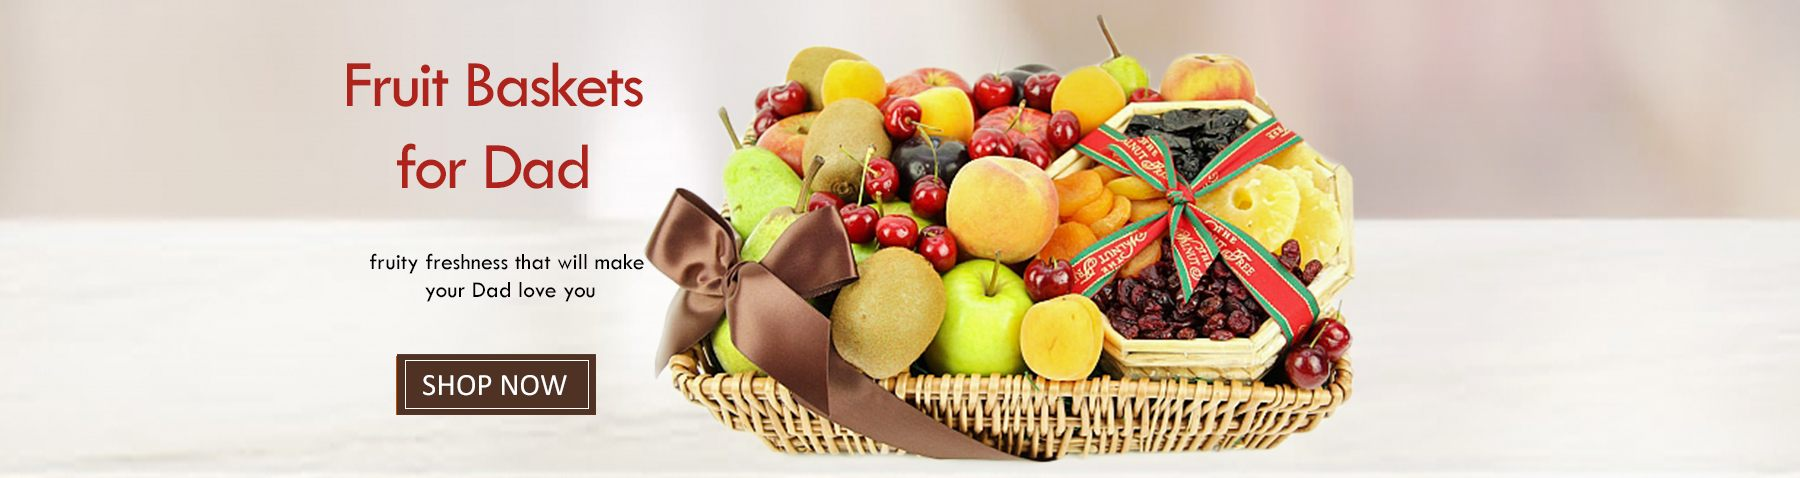 fathersday-fruit-baskets-gifts